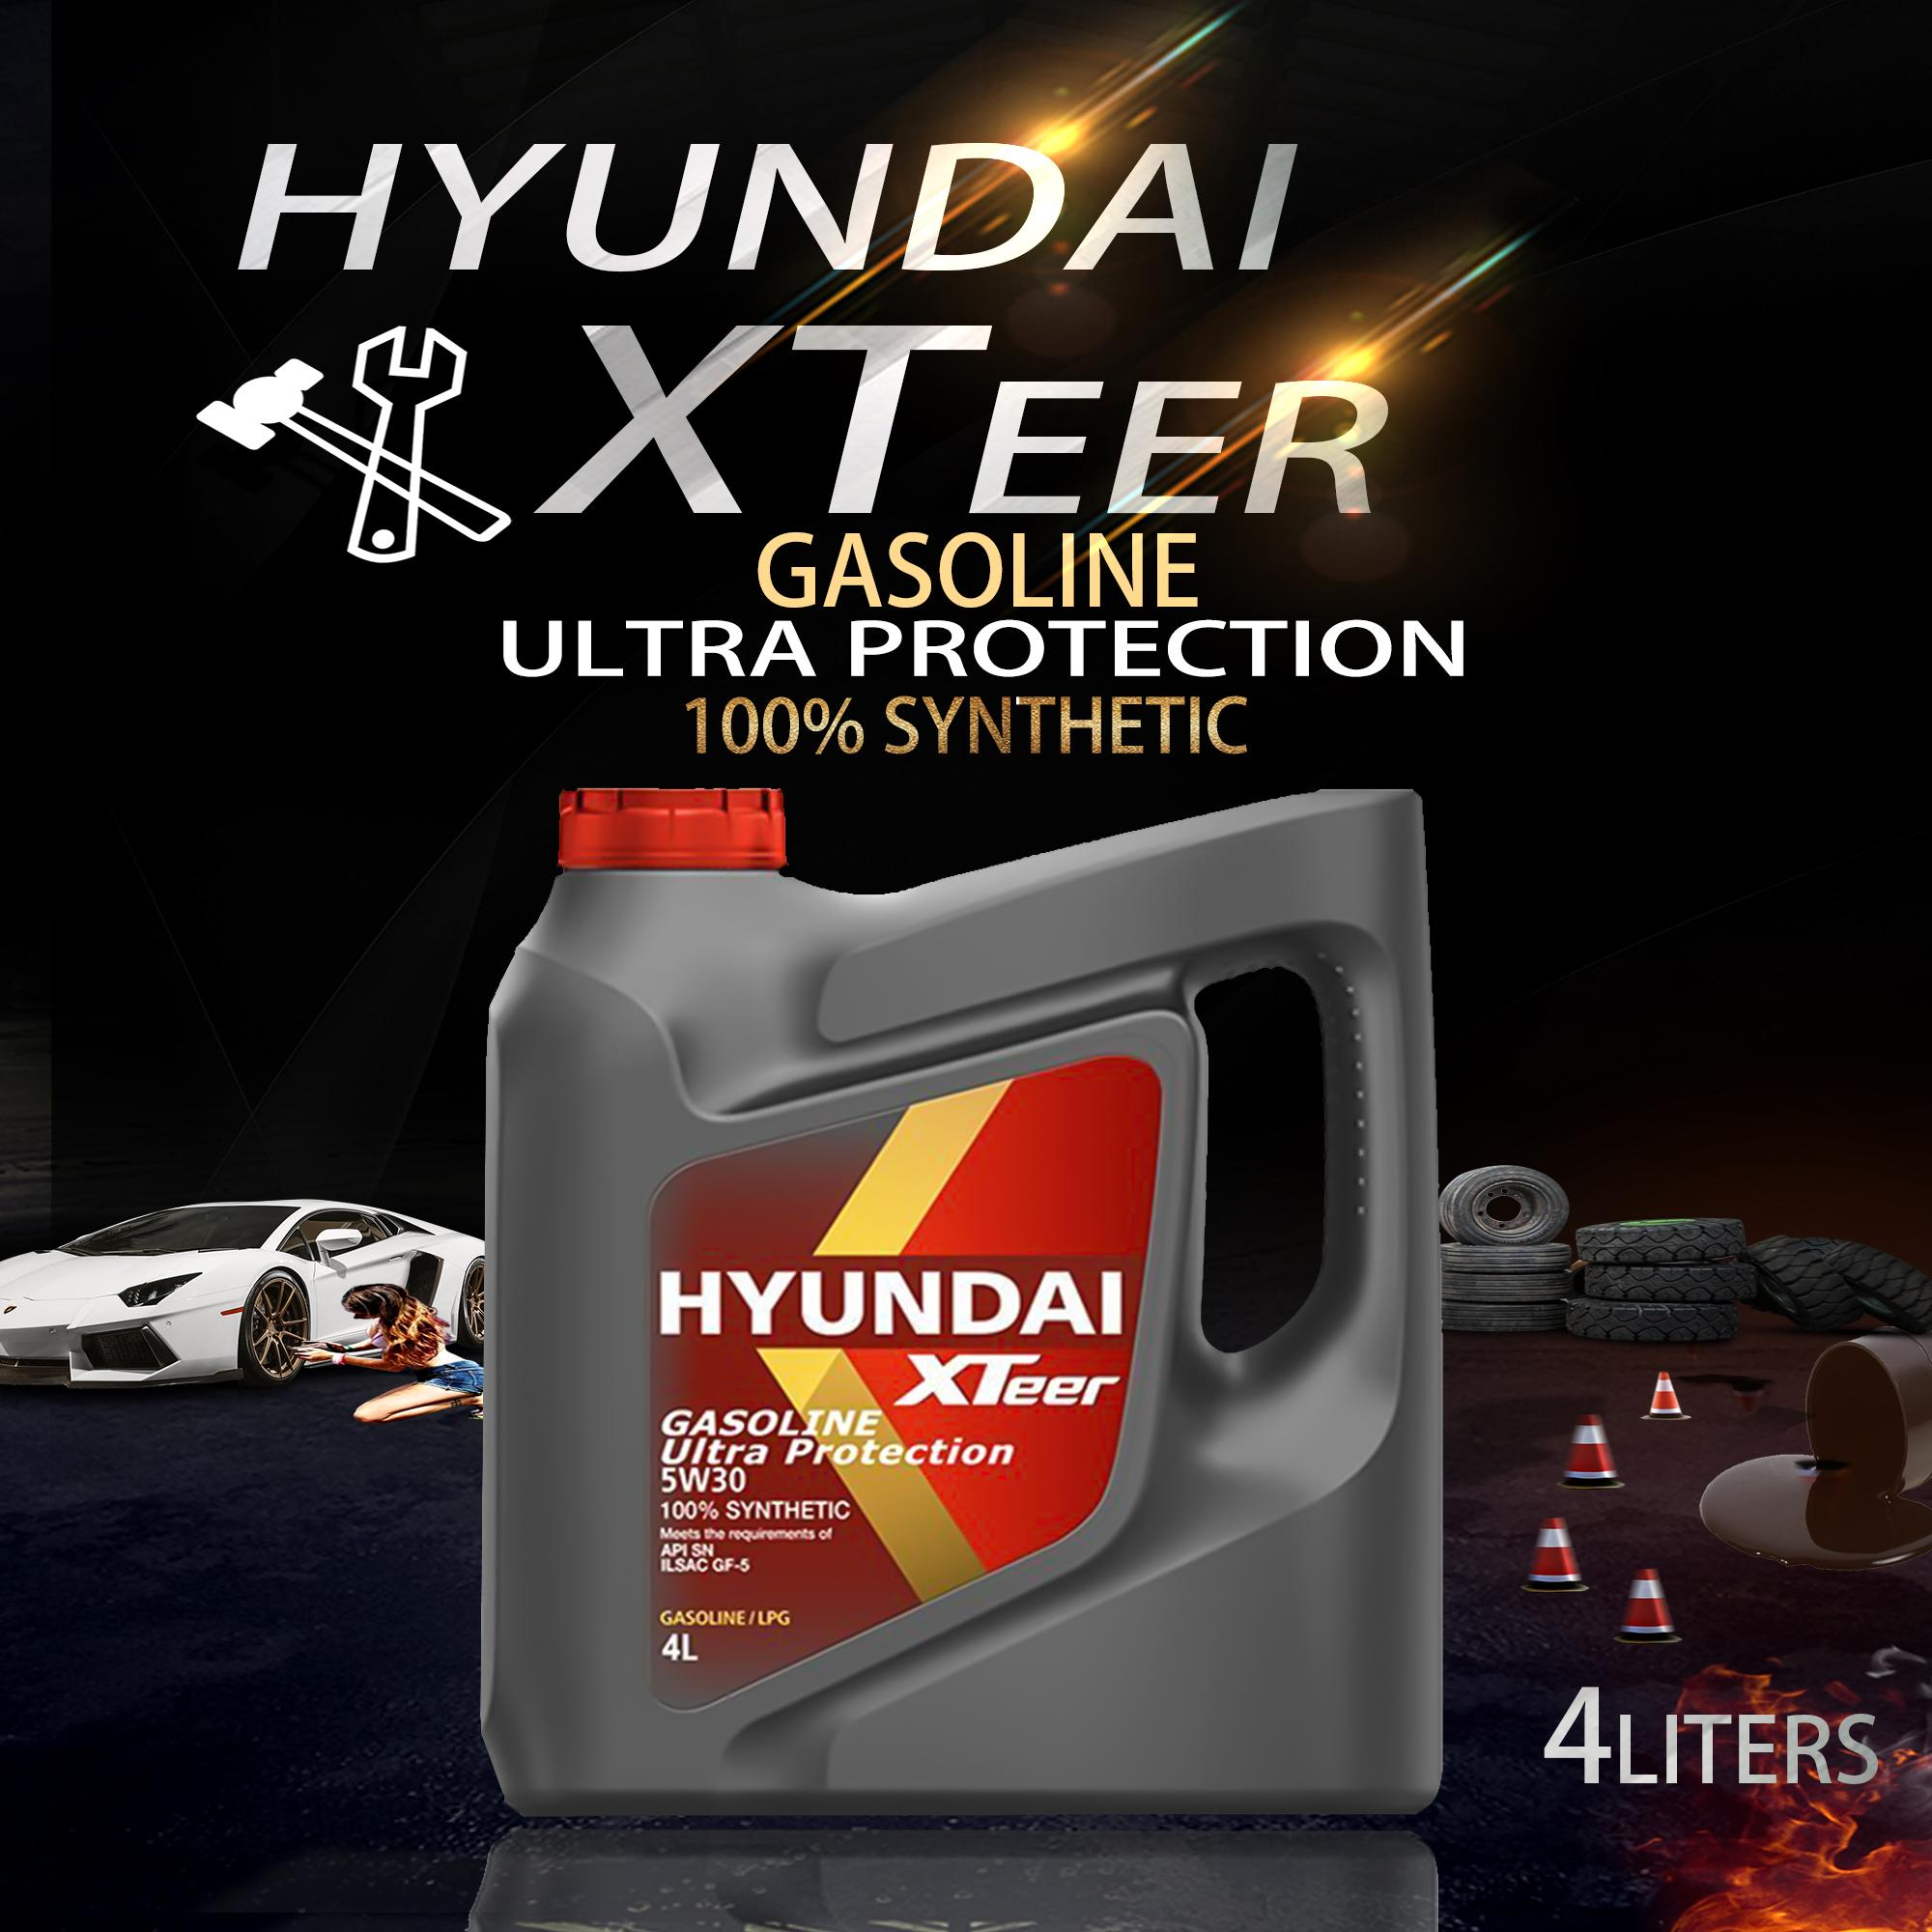 Hyundai XTeer Gasoline Ultra Protection 5W-30 Fully Synthetic Motor Oil 1  Gallon ( 4 Liters )